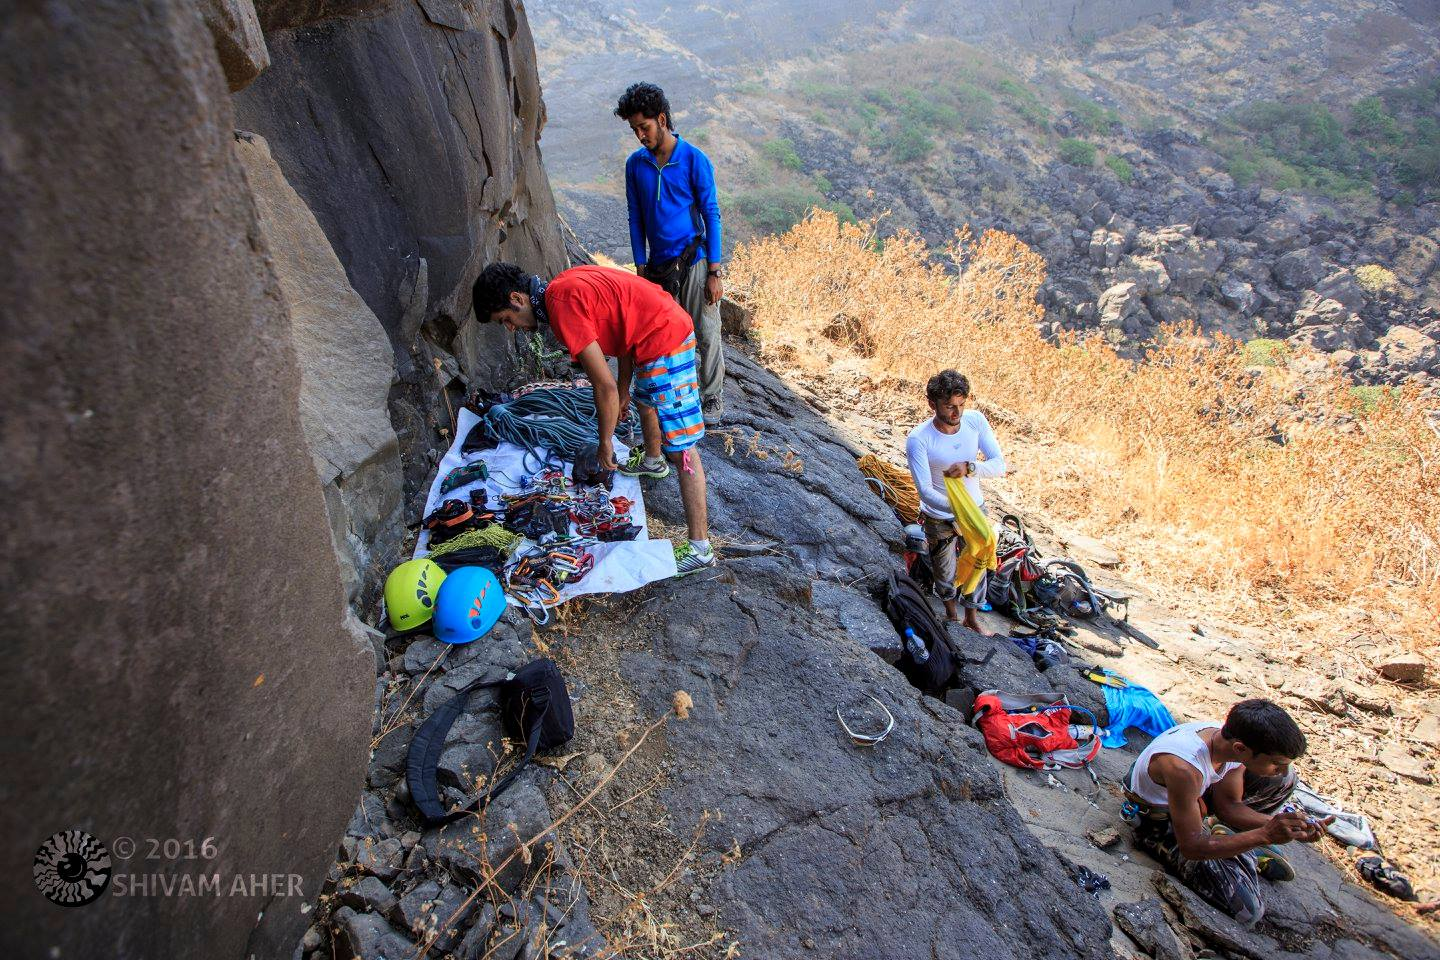 Trad Climbing in India - Setting up the base of the climb